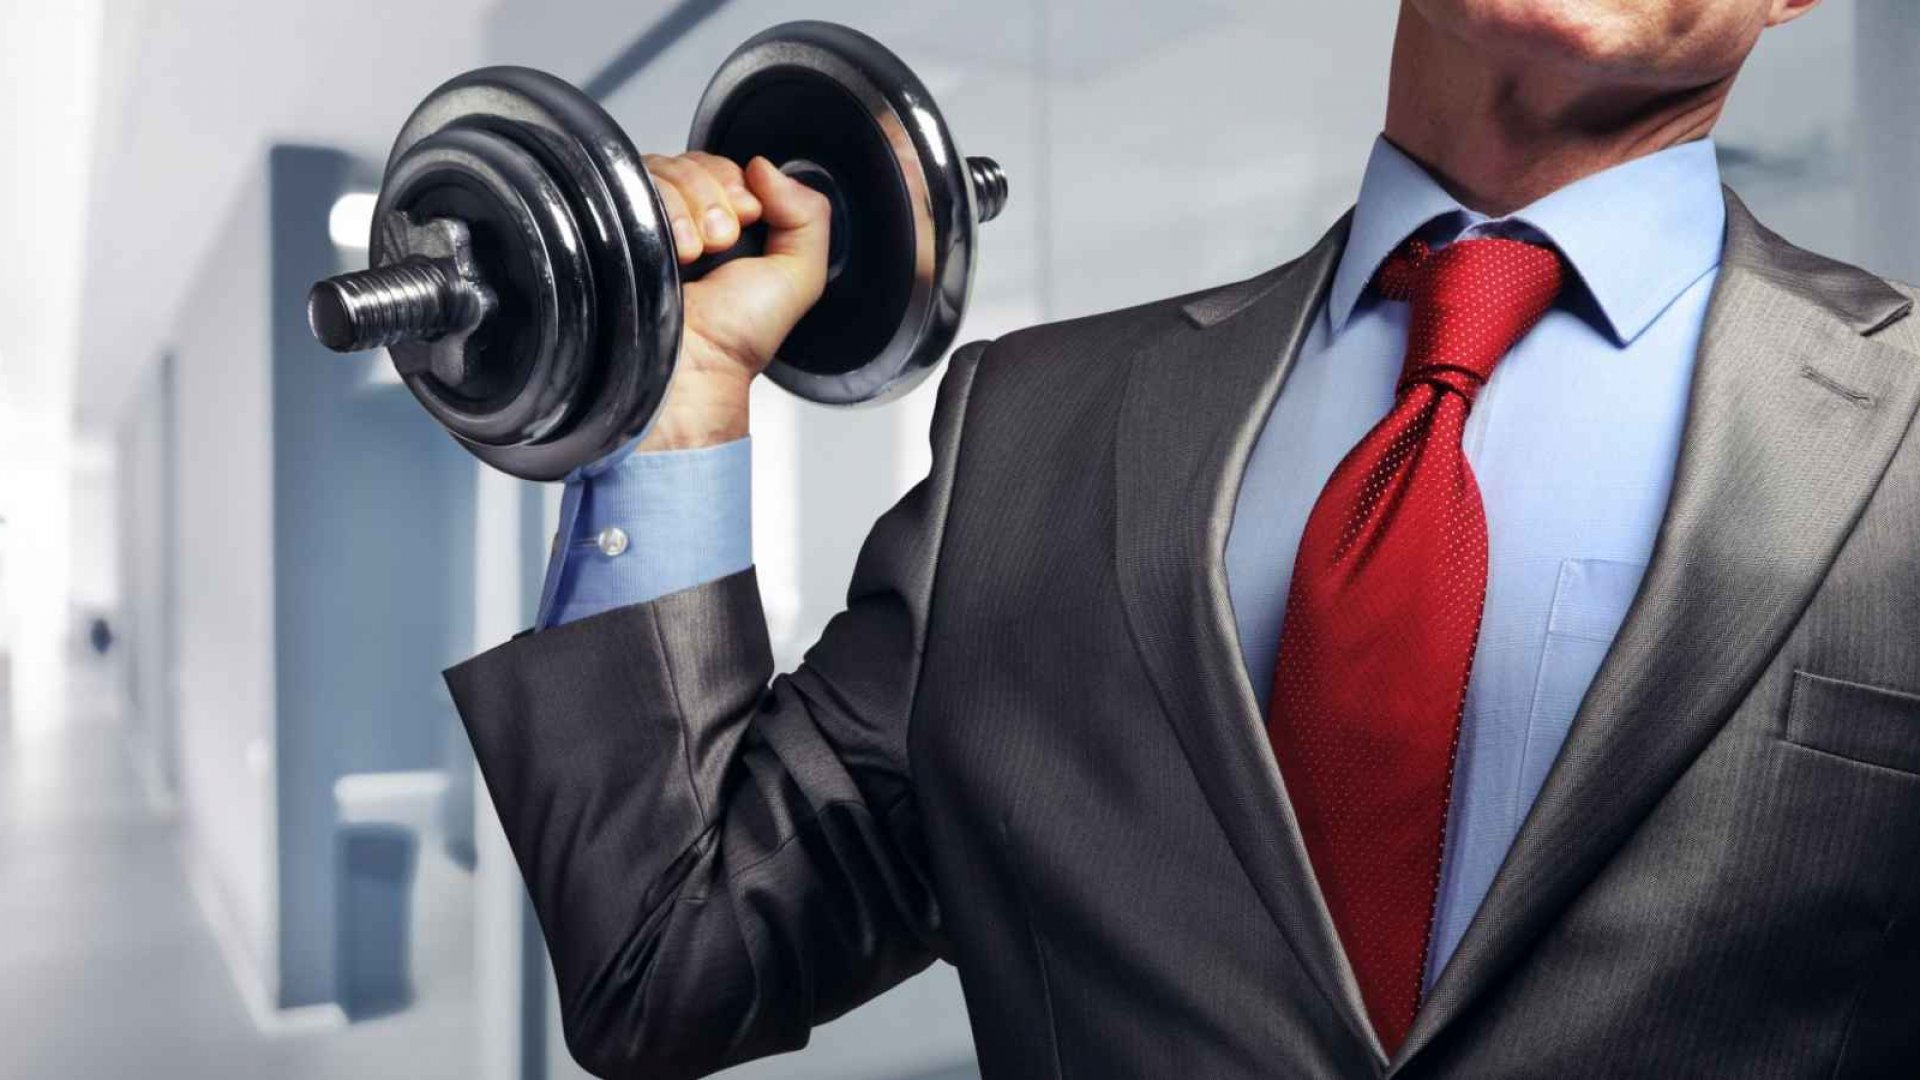 image of a headless man in a suit with dumbell weights, red tie, blue shirt, grey jacket for lockdown work from home blog